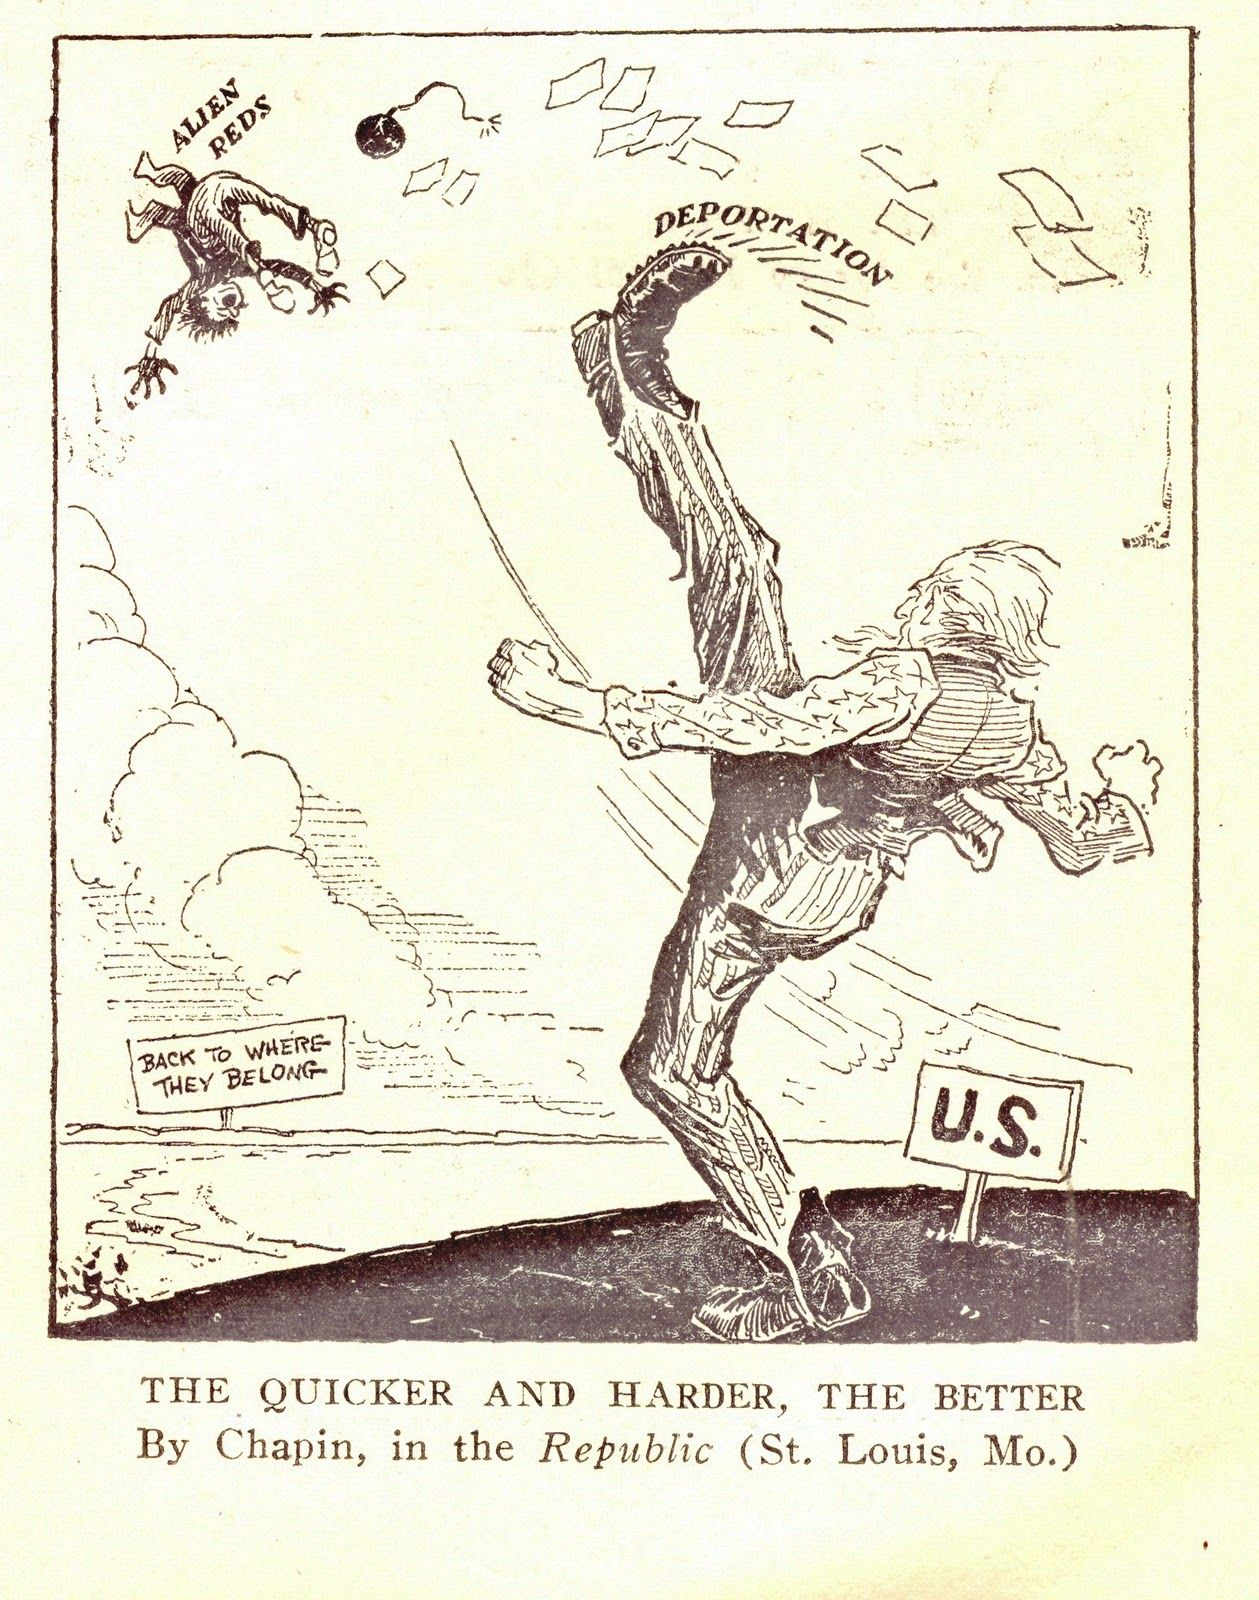 Iron curtain political cartoon -  No Irish Need Apply Things The Right Wing Would Like You To Forget Political Satirepolitical Cartoonsteaching